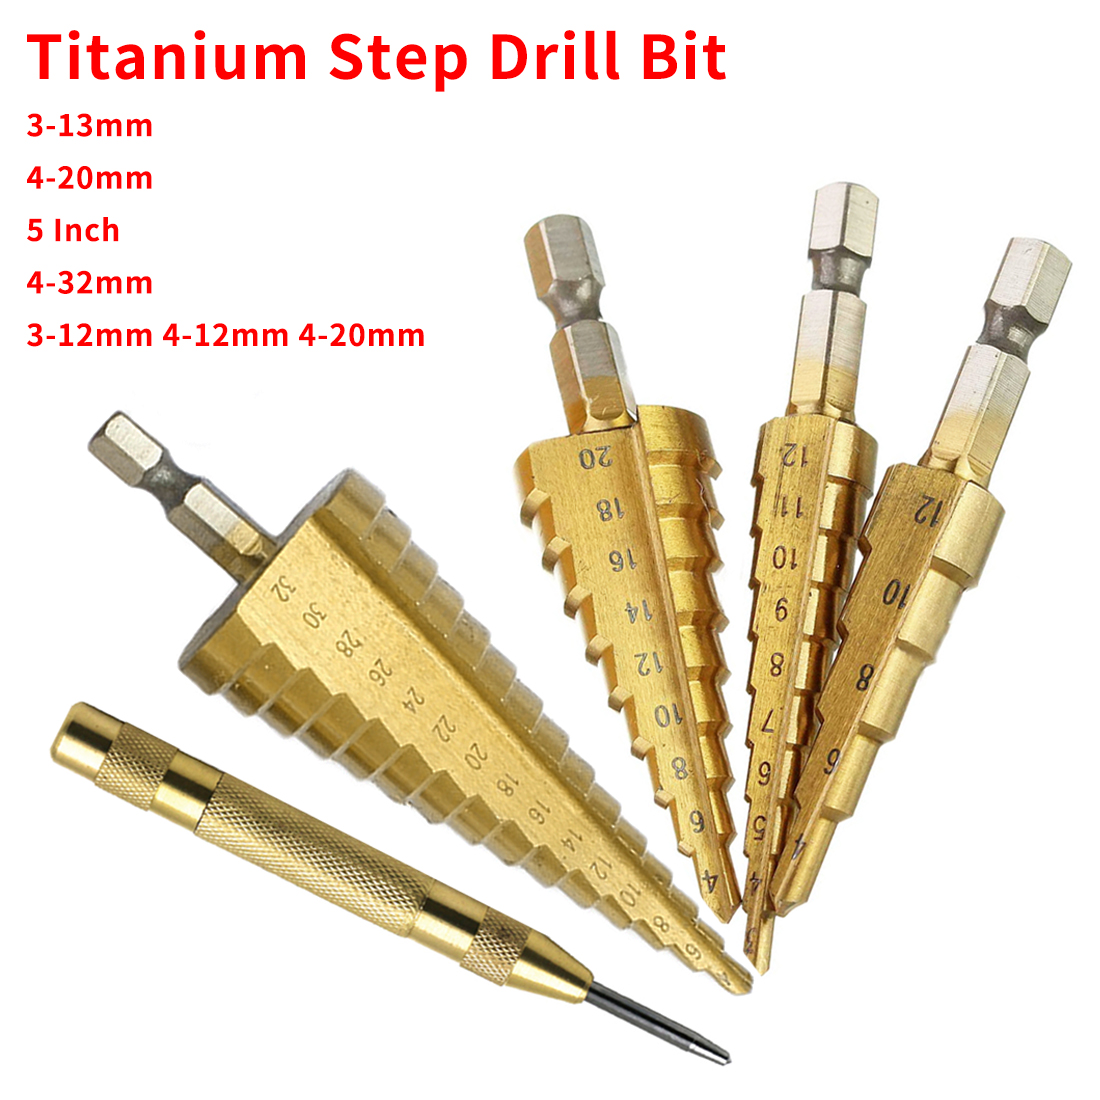 3-12mm 4-12mm 4-20mm Step Drill Bit HSS Titanium Steel Woodworking Metal Drilling Set Hex Shank Step Cone Cutting Tools